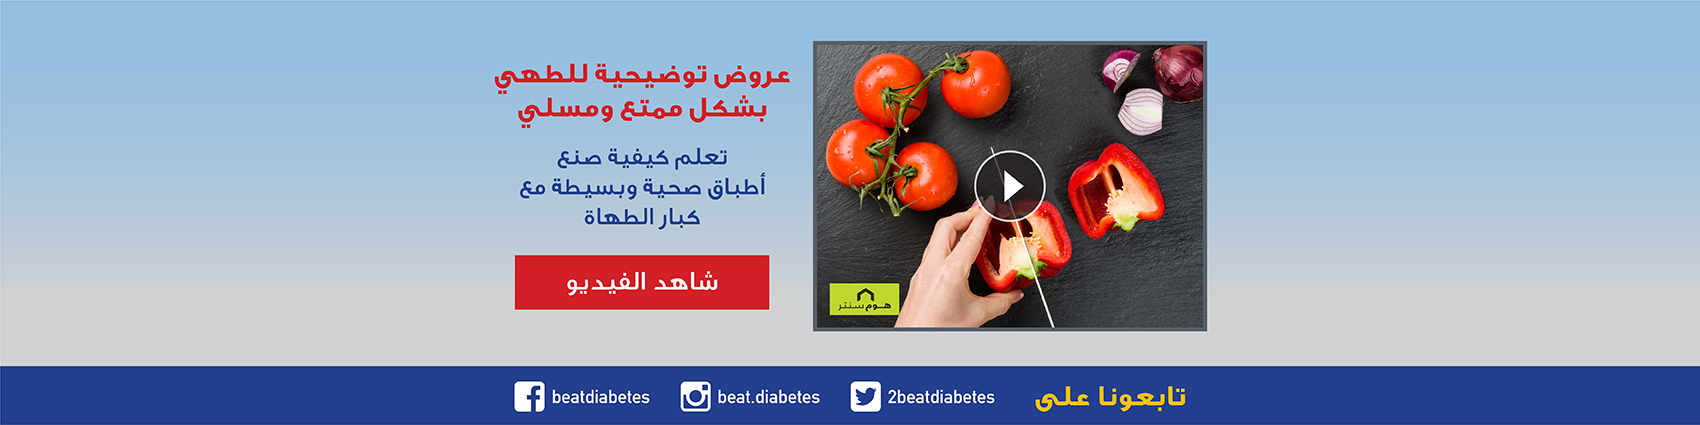 public://Cooking Demo_Arabic.jpg